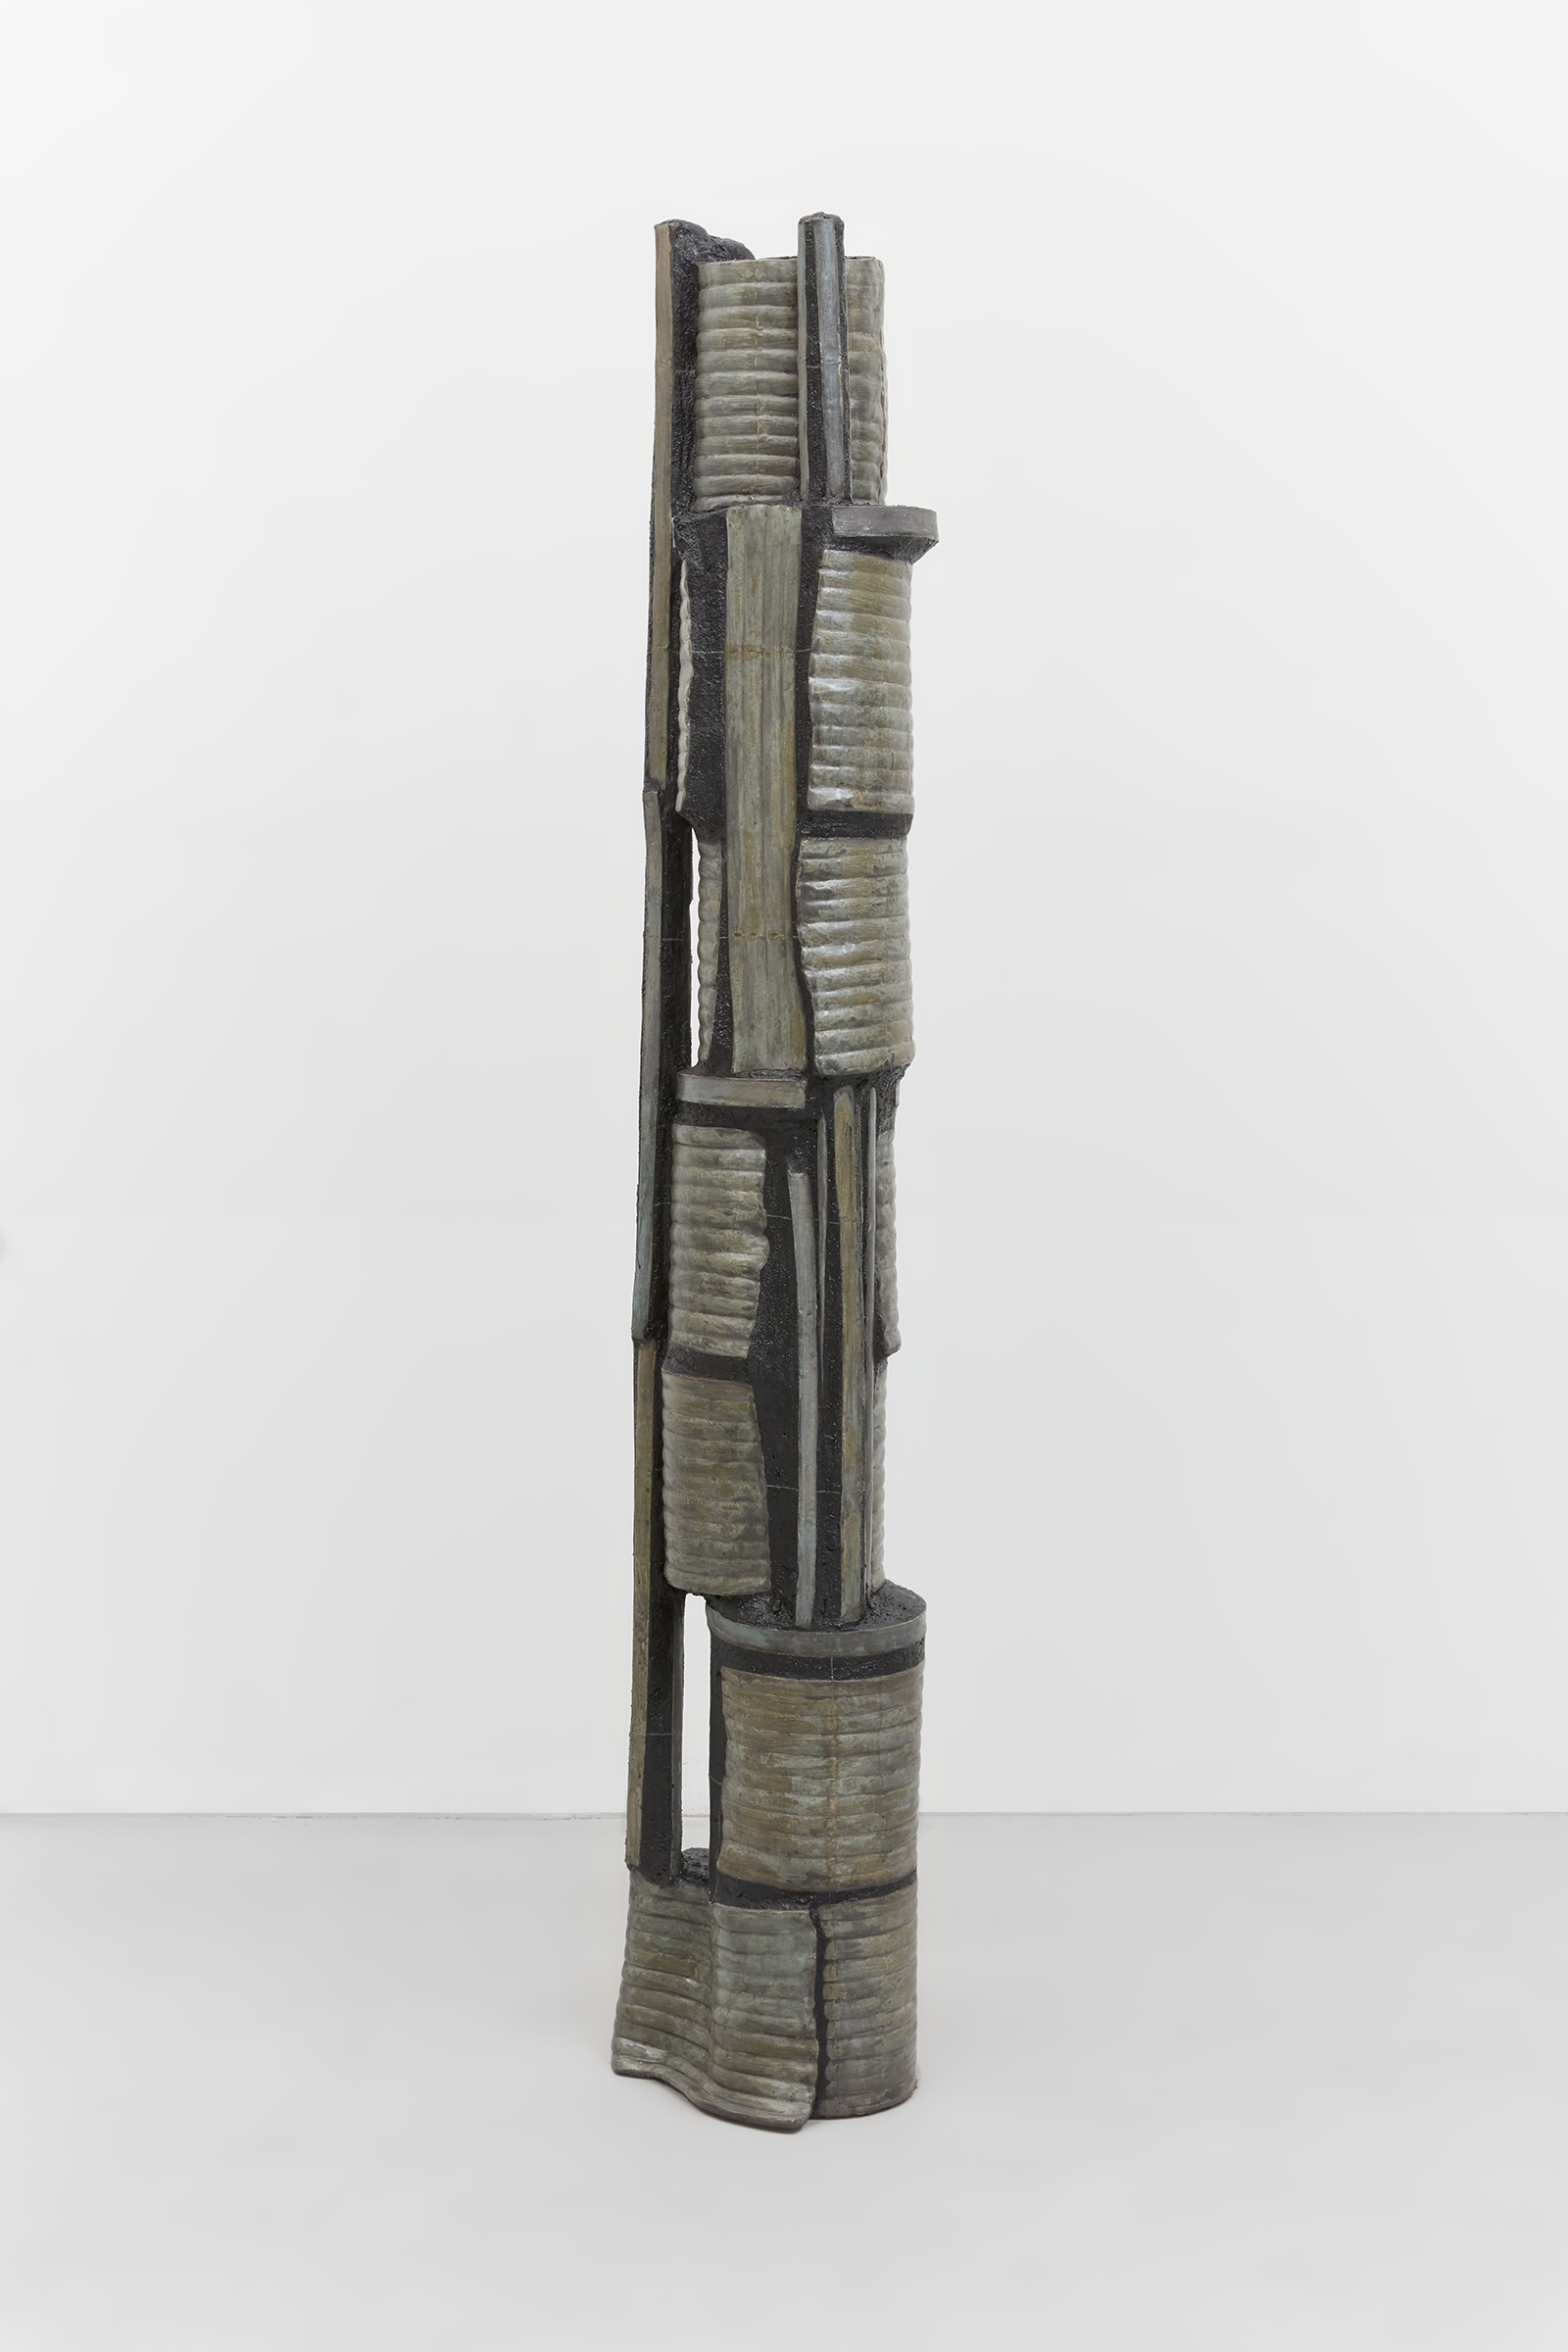 Anne Libby, Leaf Lift, 2020, glazed ceramic, steel, sanded grout, 72.25h x 12w x 12d in.